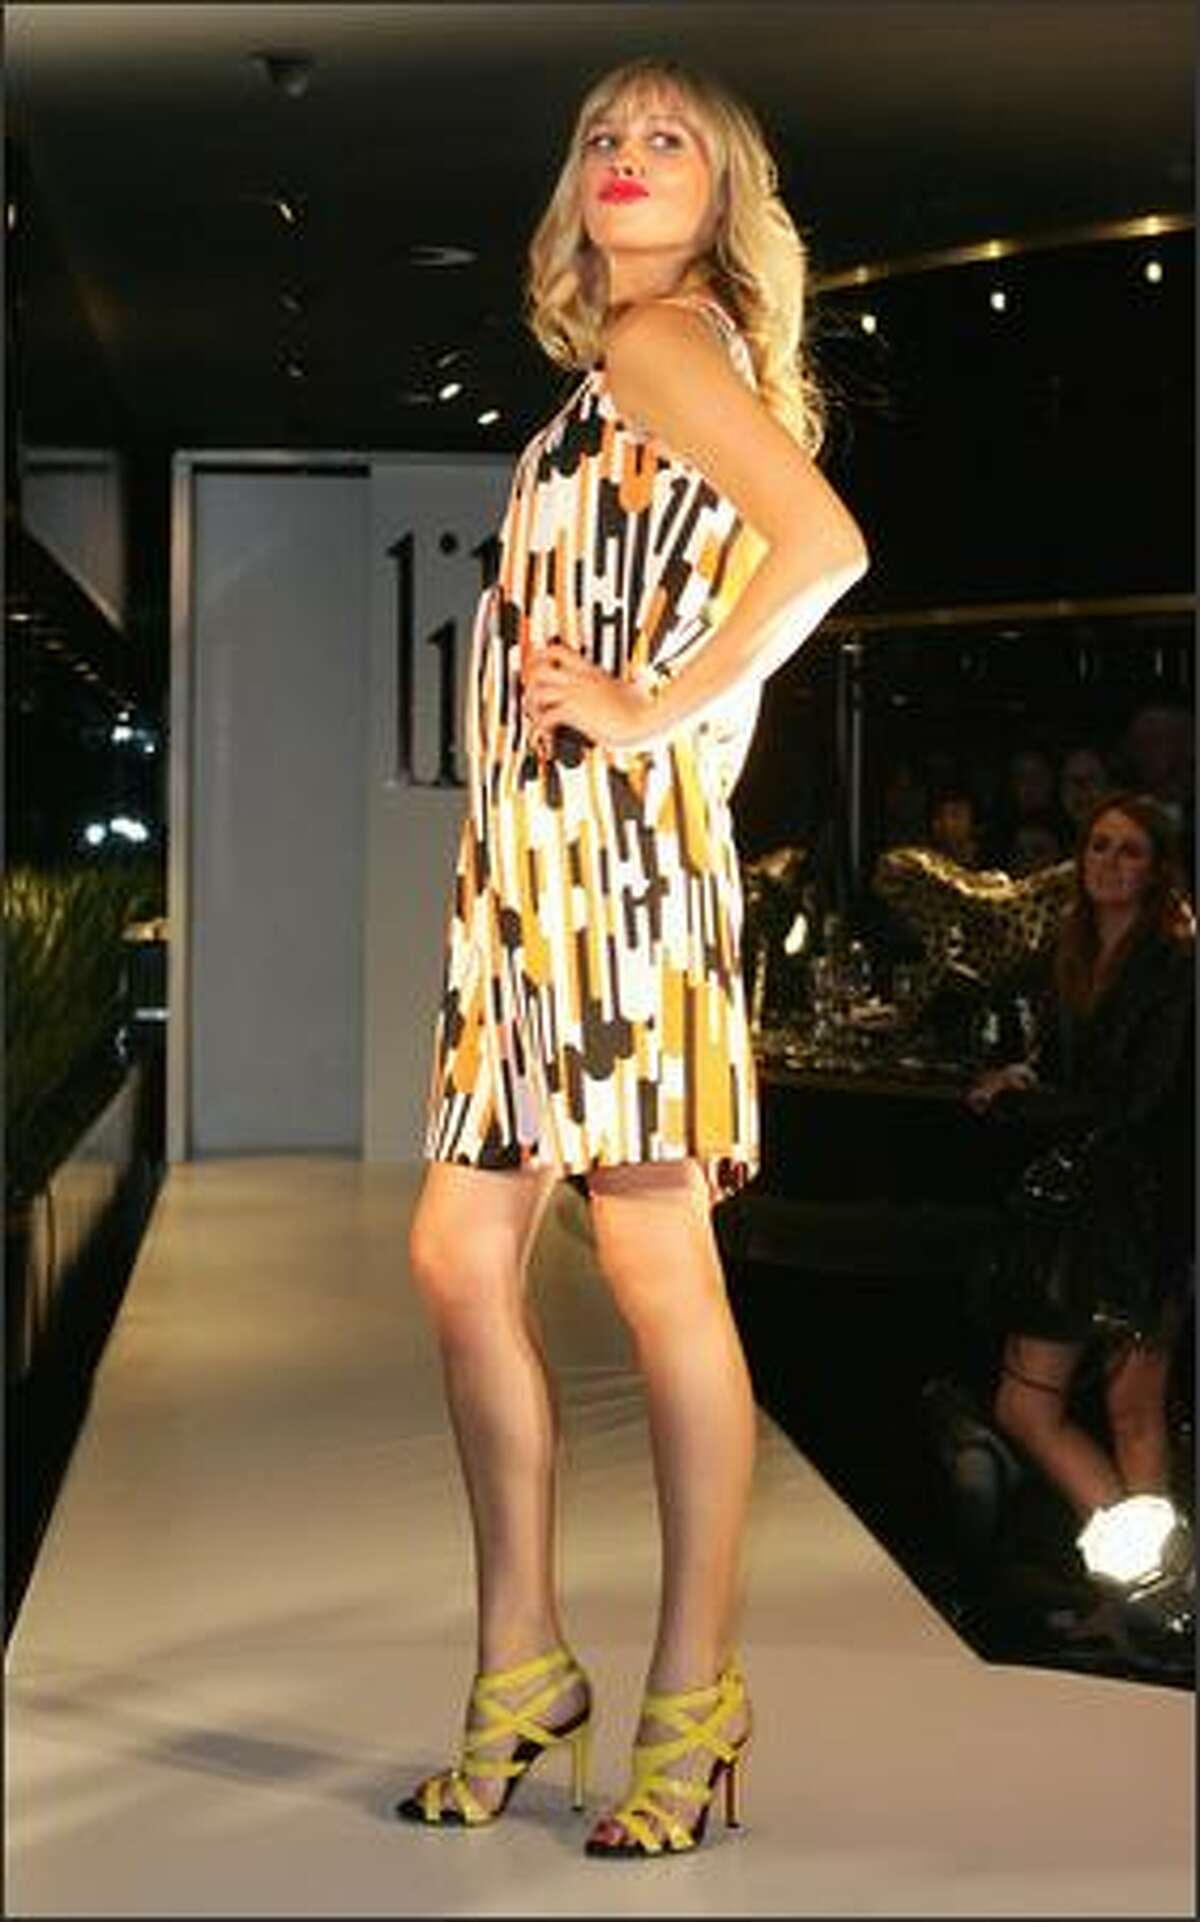 """A model showcases an outfit by designer Lili during the official launch party for Lili Summer's new collection """"Where the Young & Rich Play"""" at The Piano Room on Tuesday in Sydney, Australia."""